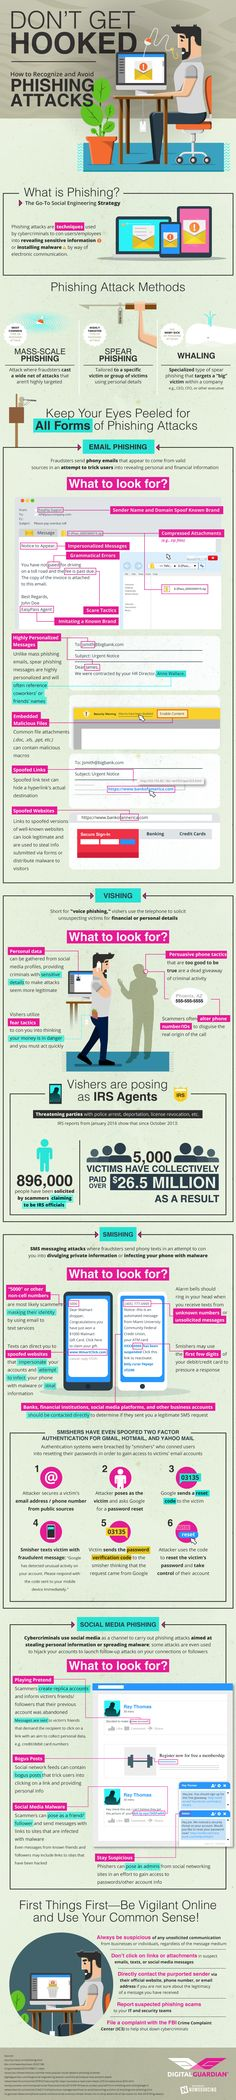 How to Recognize Phishing Attacks #Infographic #HowTo